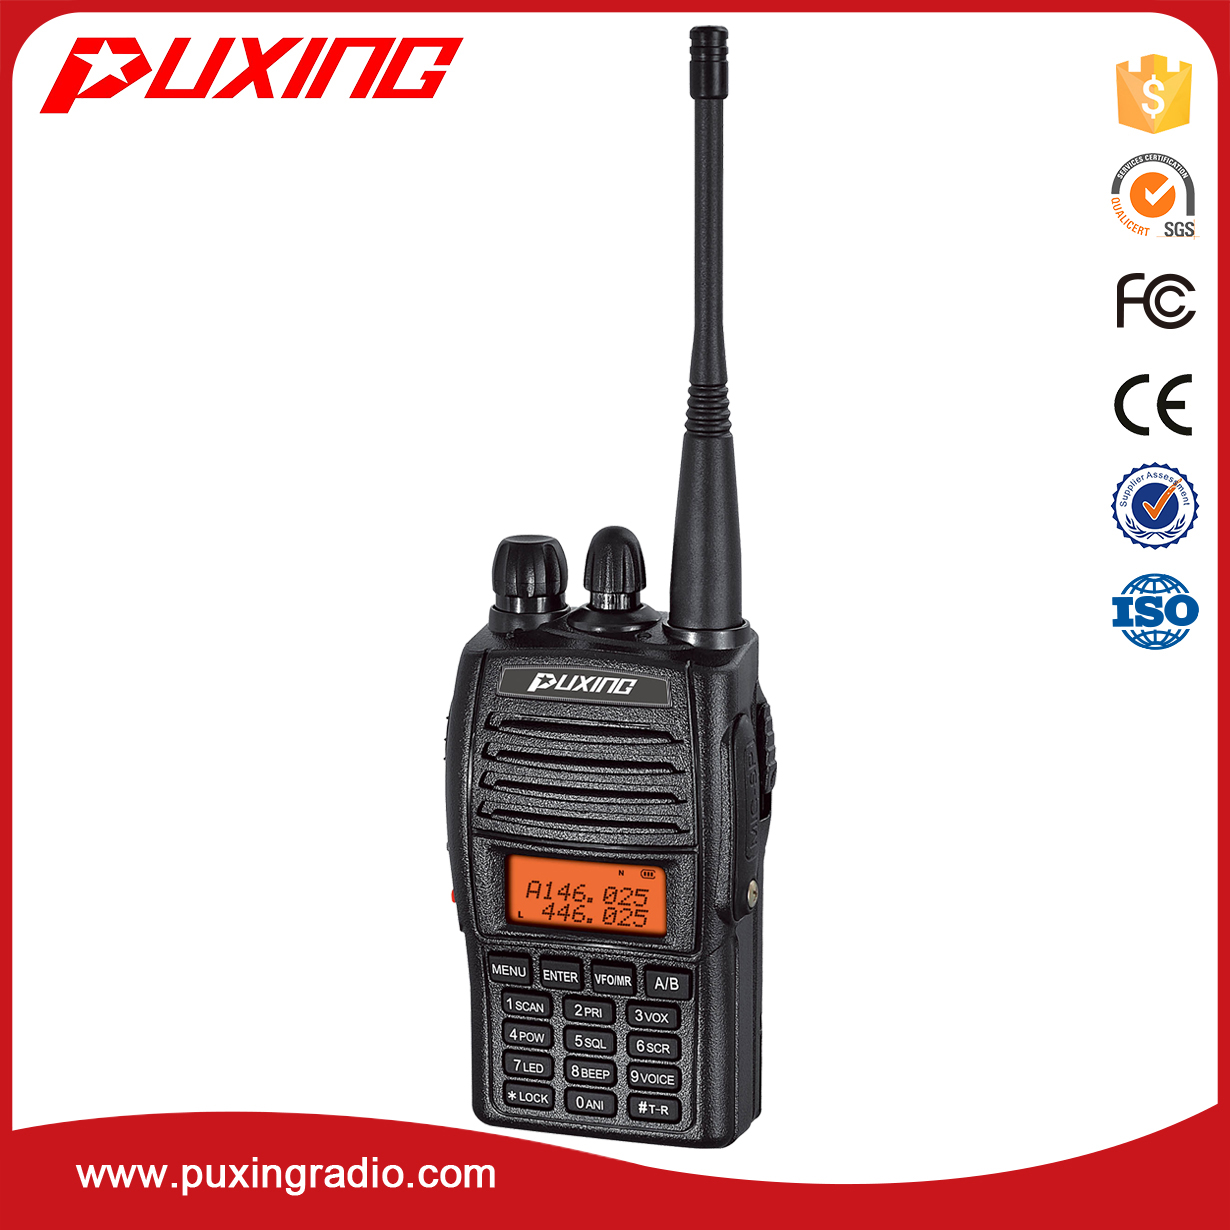 PX-UV973 dual band radio